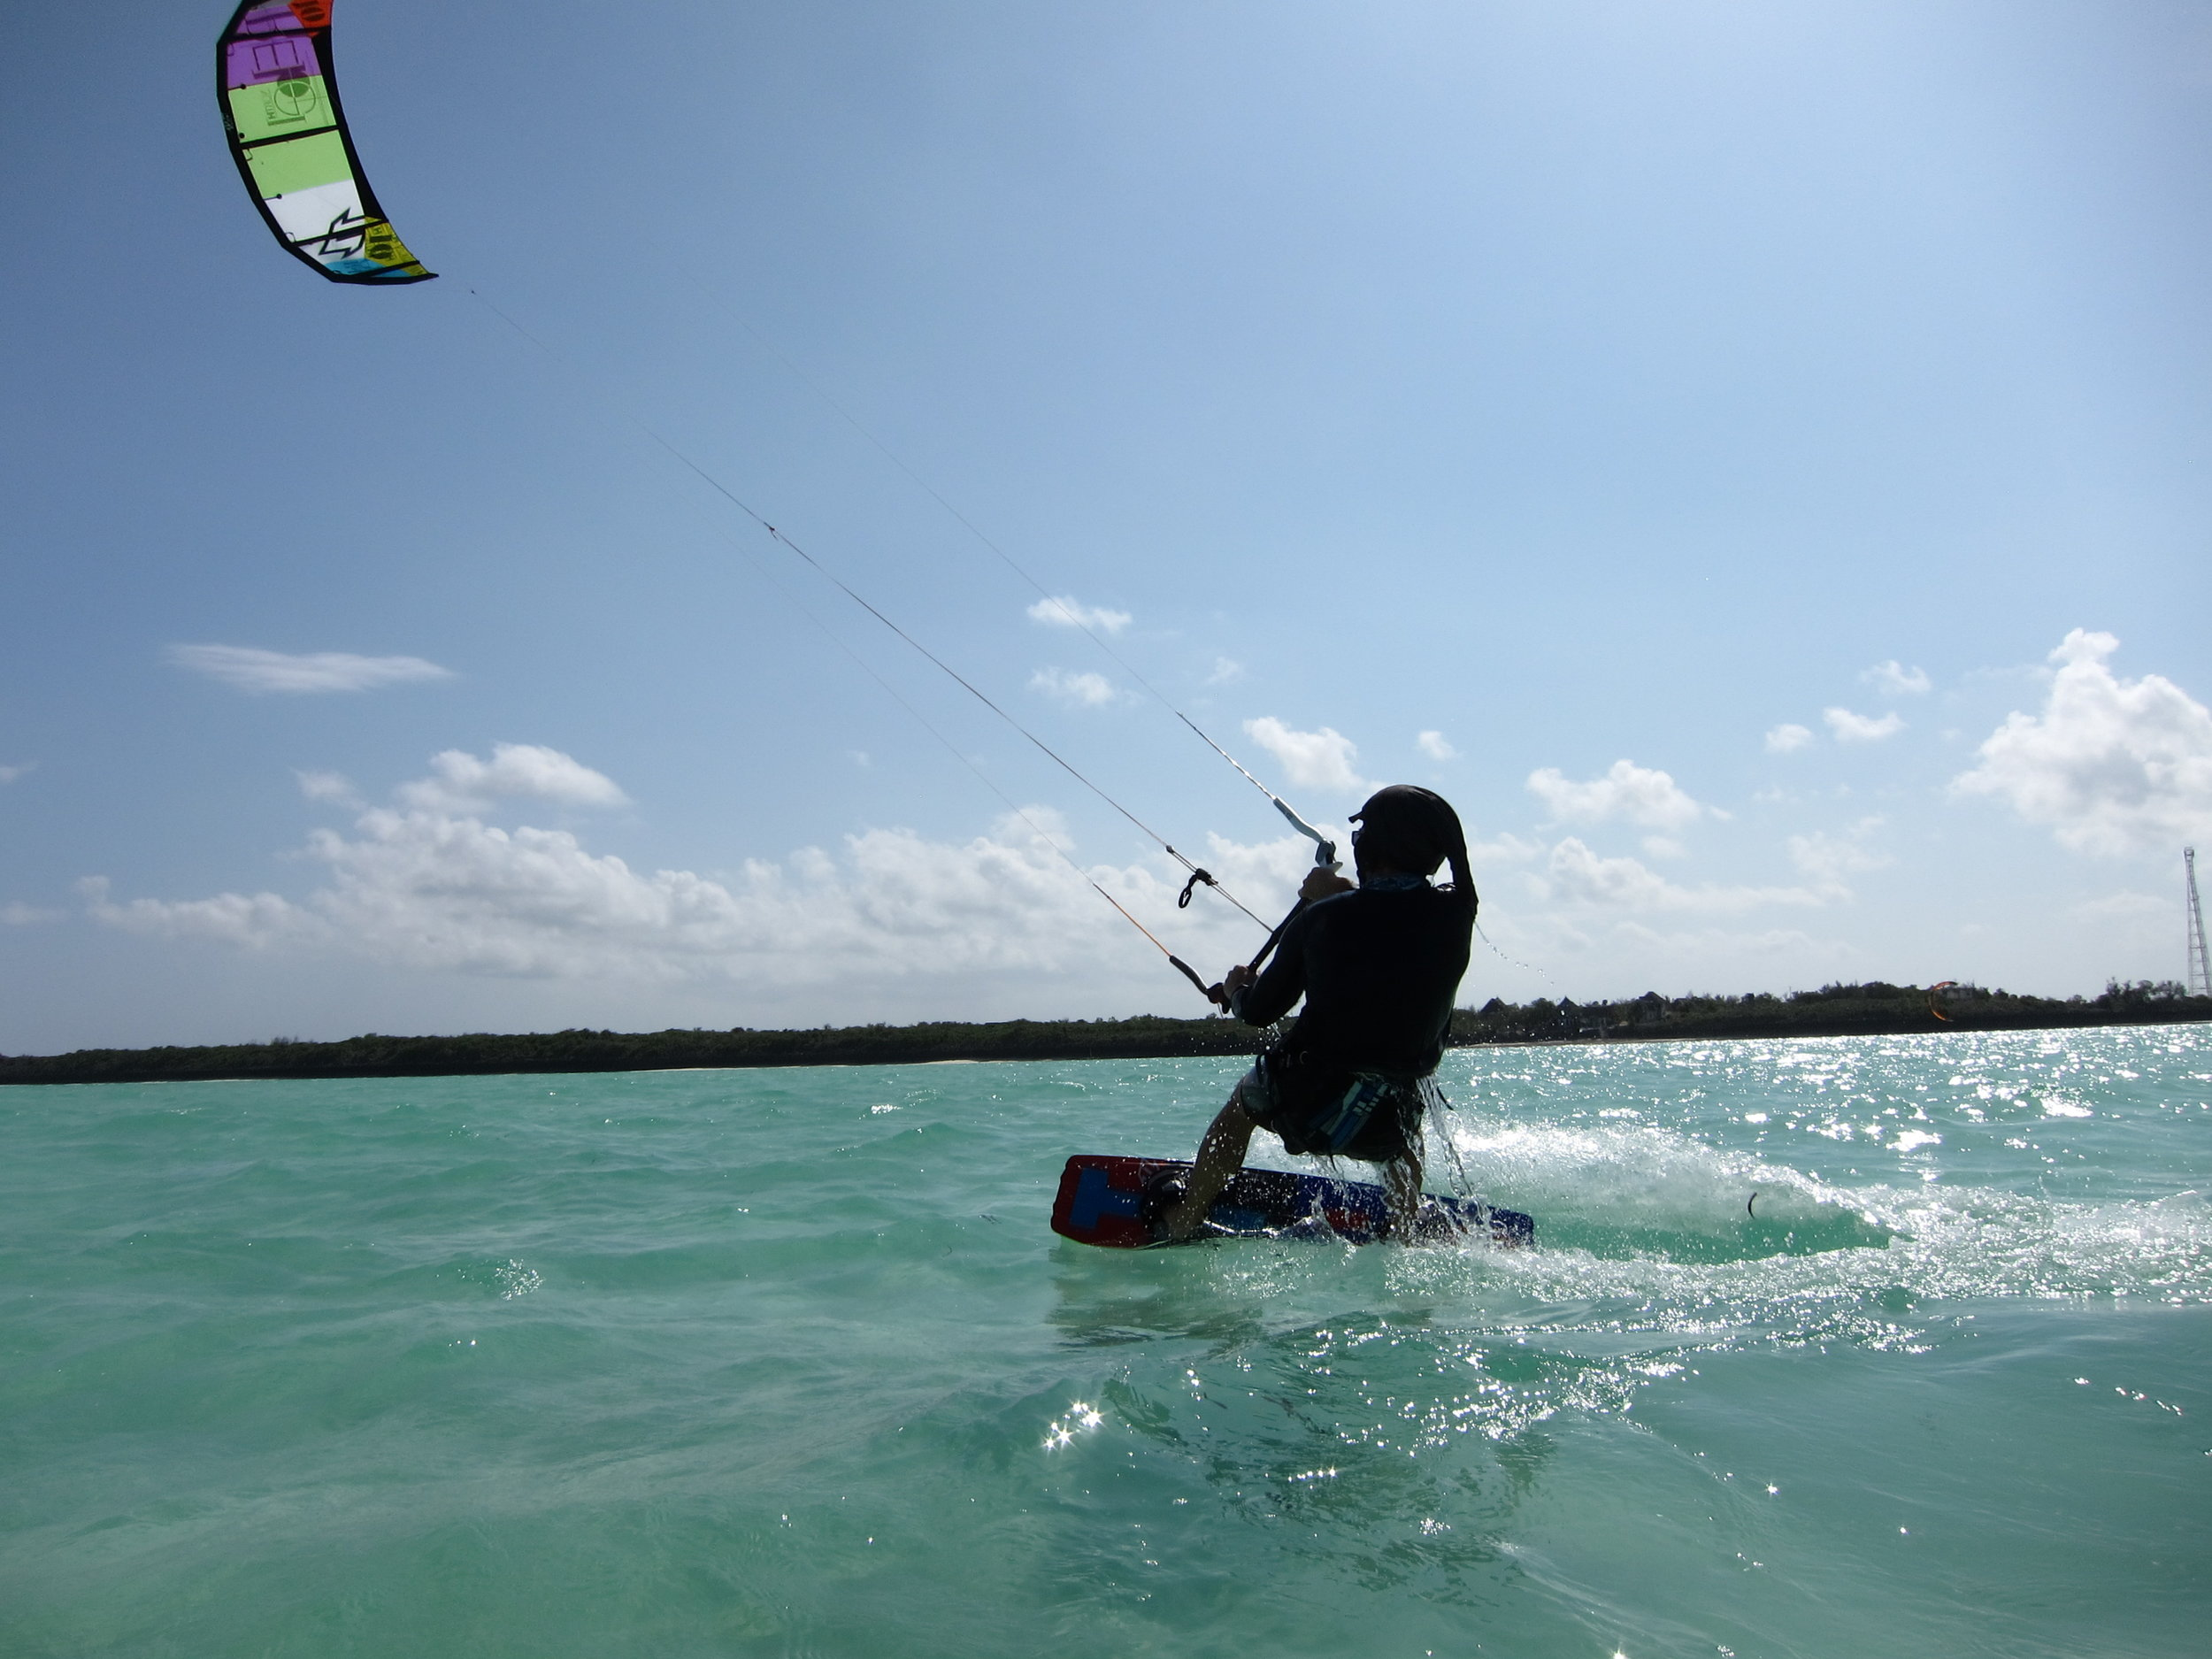 Preparing for a kitesurfing journey in Zanzibar. Investing your own money into training and ensuring you document it well can help push sponsors over the line for the final mission.